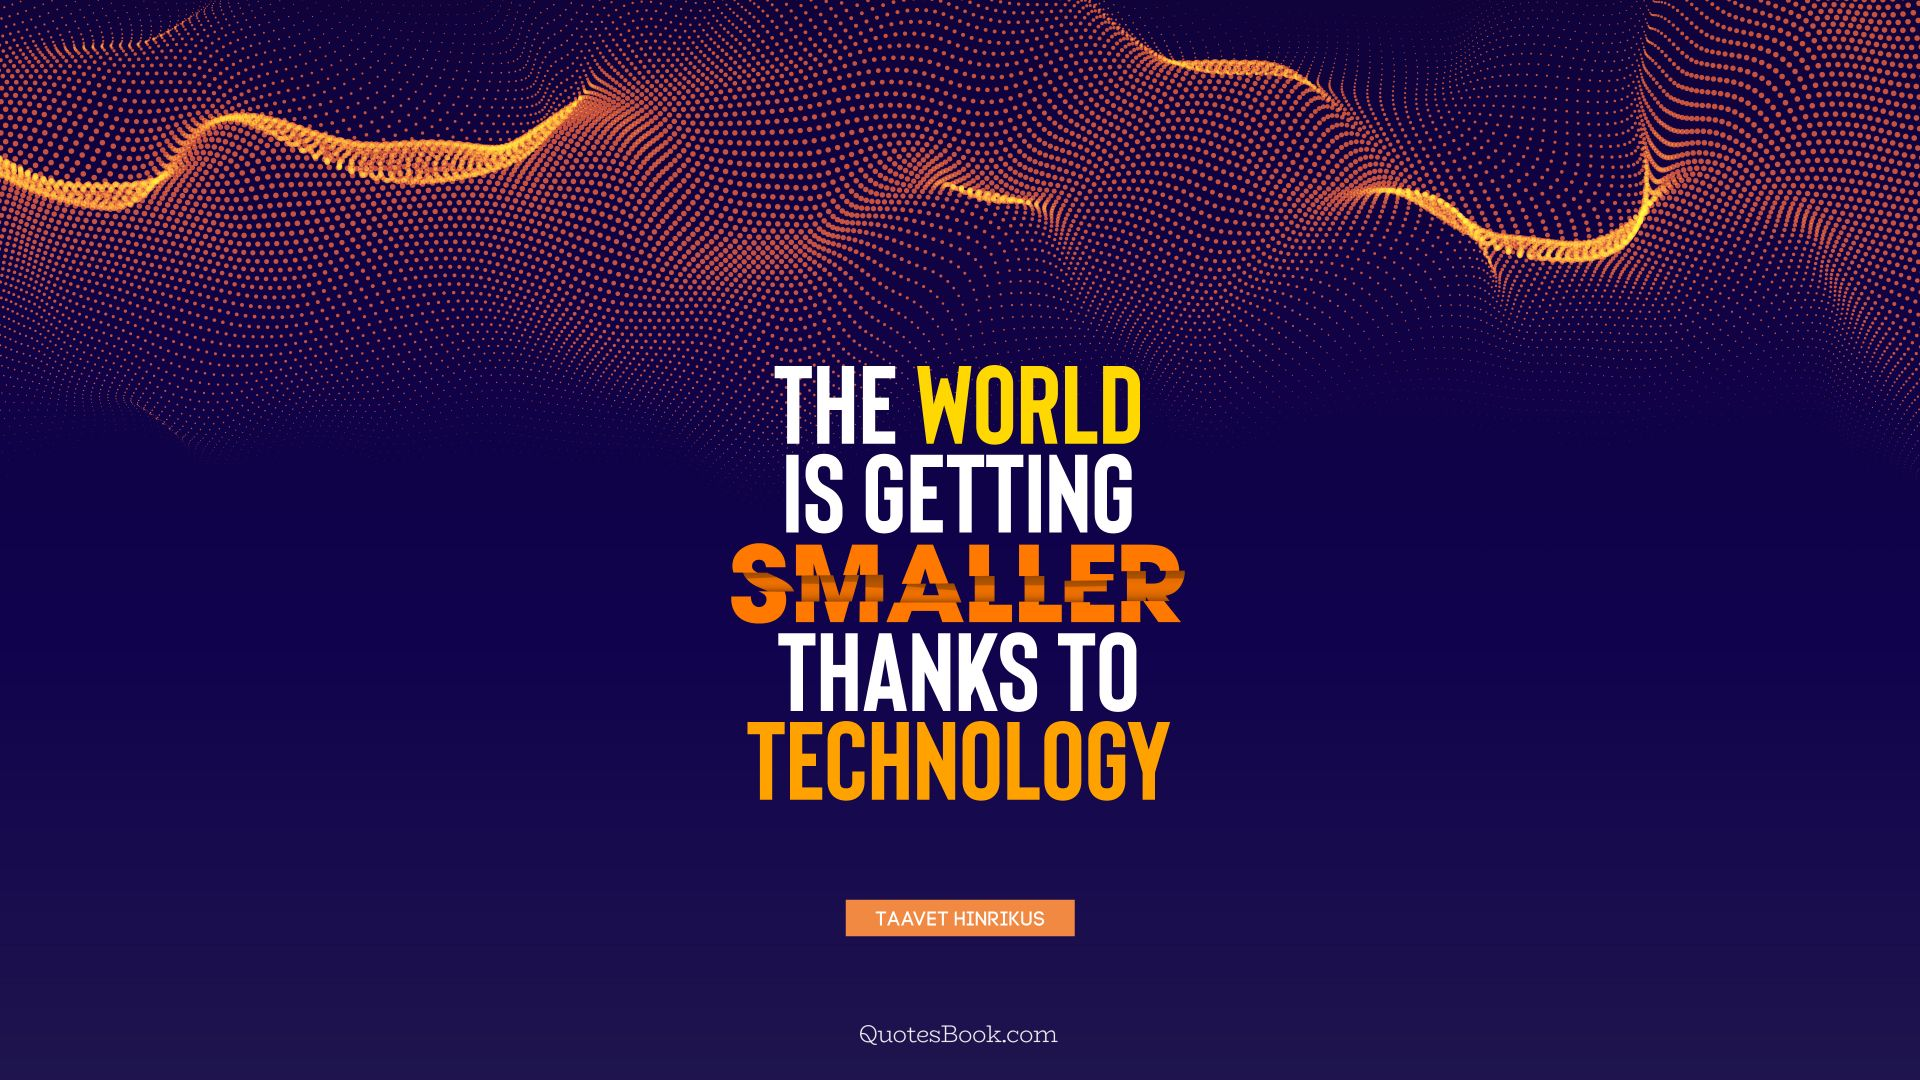 The world is getting smaller thanks to technology. - Quote by Taavet Hinrikus